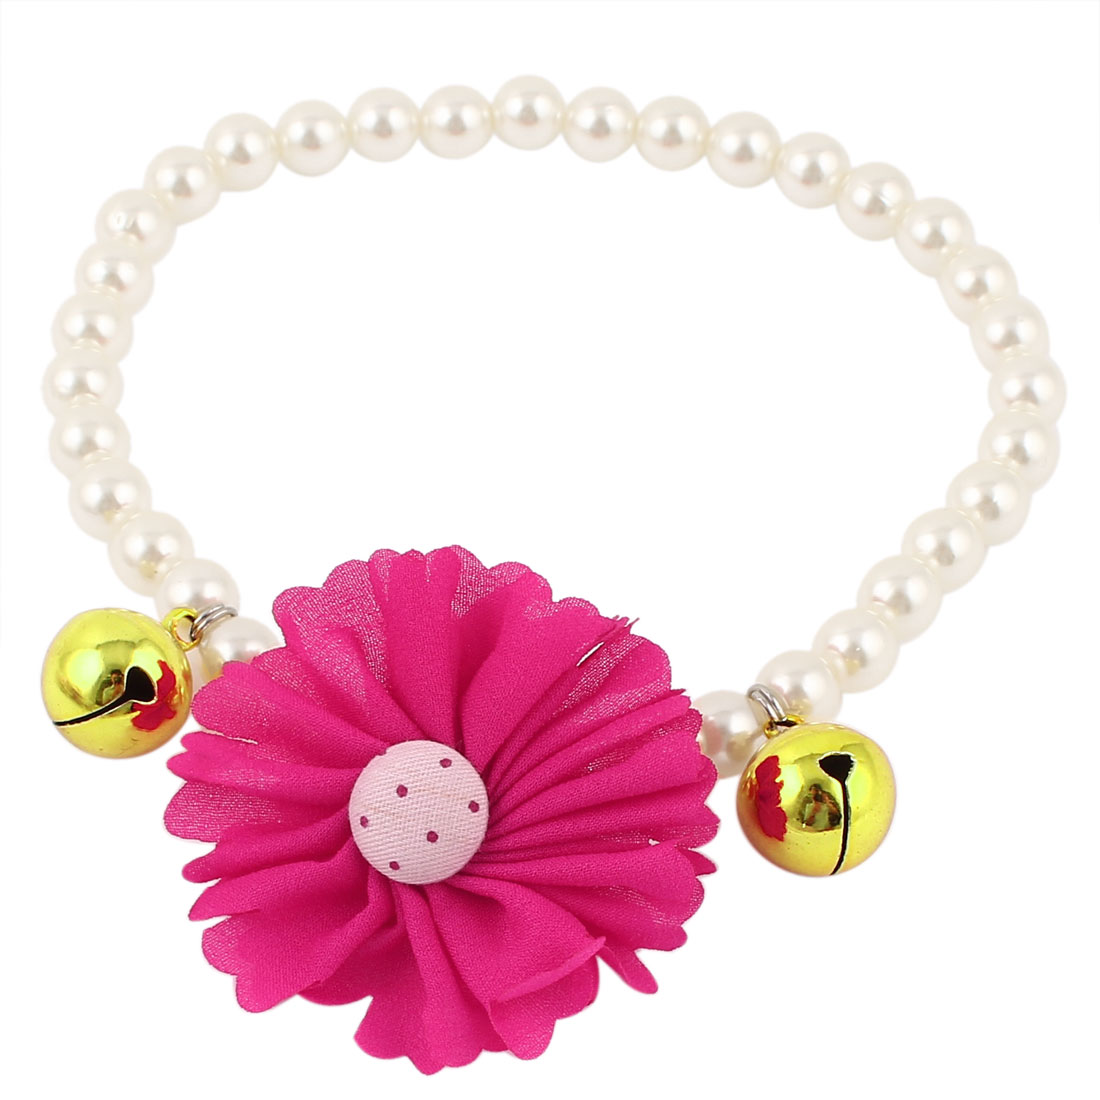 Metal Bell Pendant Flower Accent Pet Dog Plastic Beads Pearls Collar Necklace White Fuchsia L